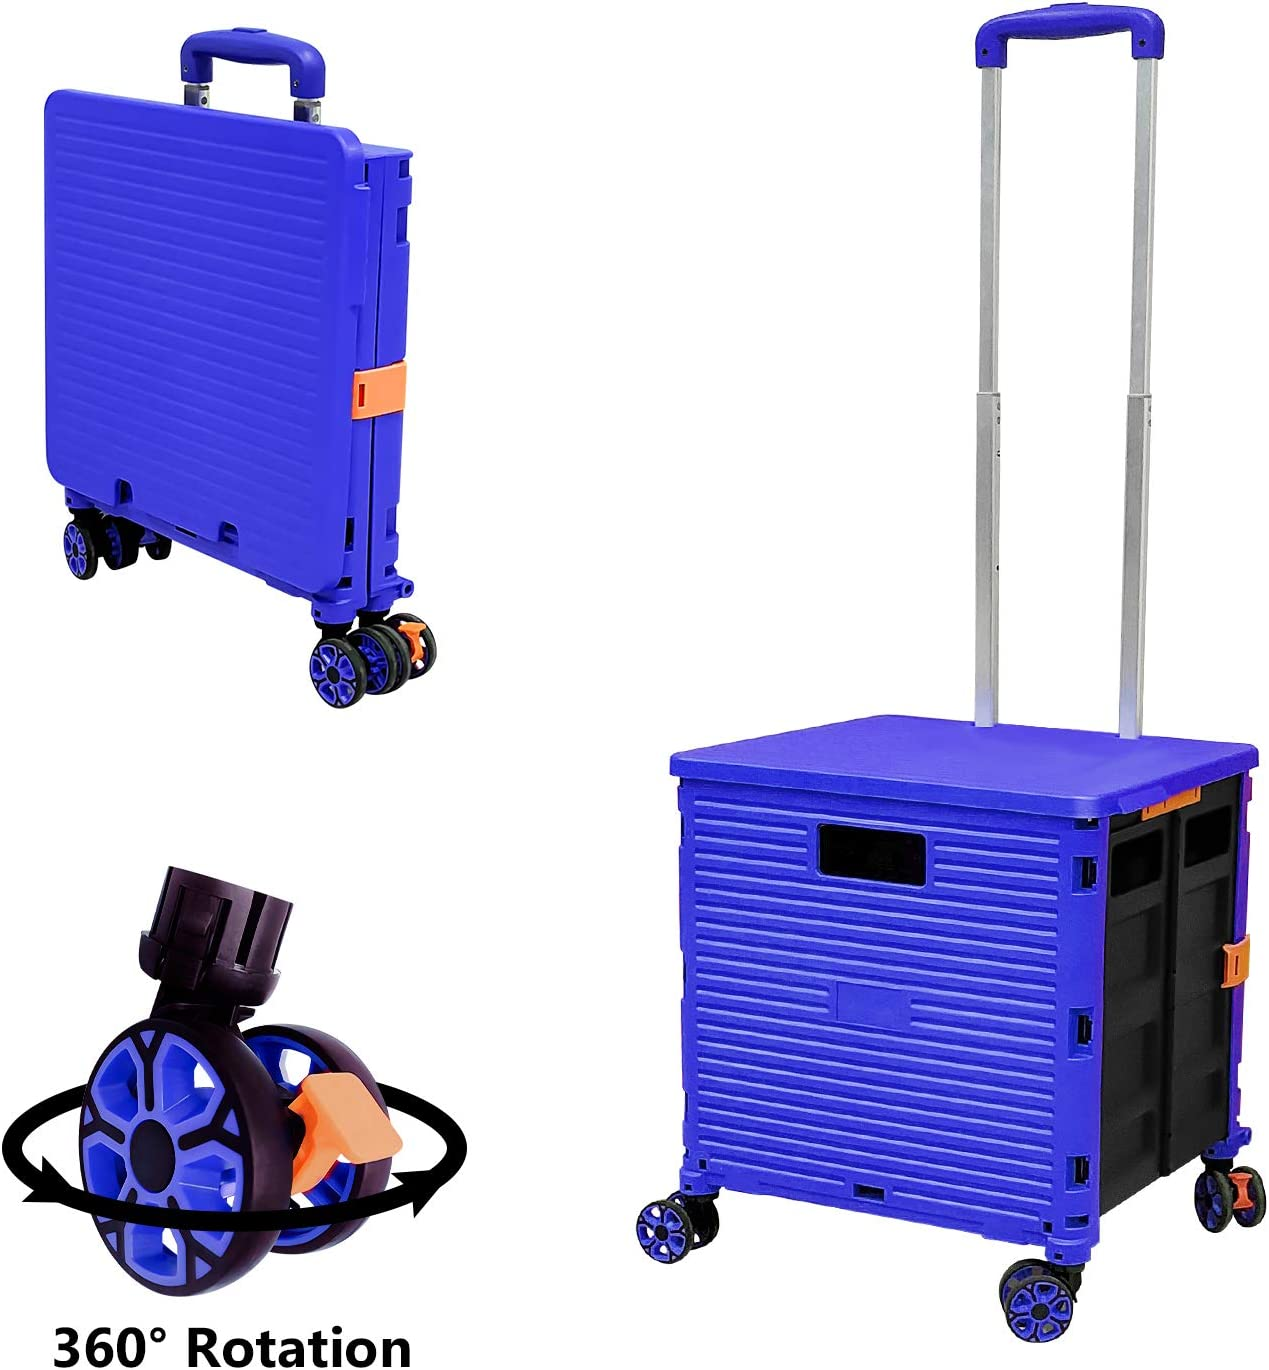 Foldable Utility Cart Folding Portable Rolling Crate Handcart with Durable Heavy Duty Plastic Telescoping Handle Collapsible 4 Rotate Wheels for Travel Shopping Moving Luggage Office Use (Blue)